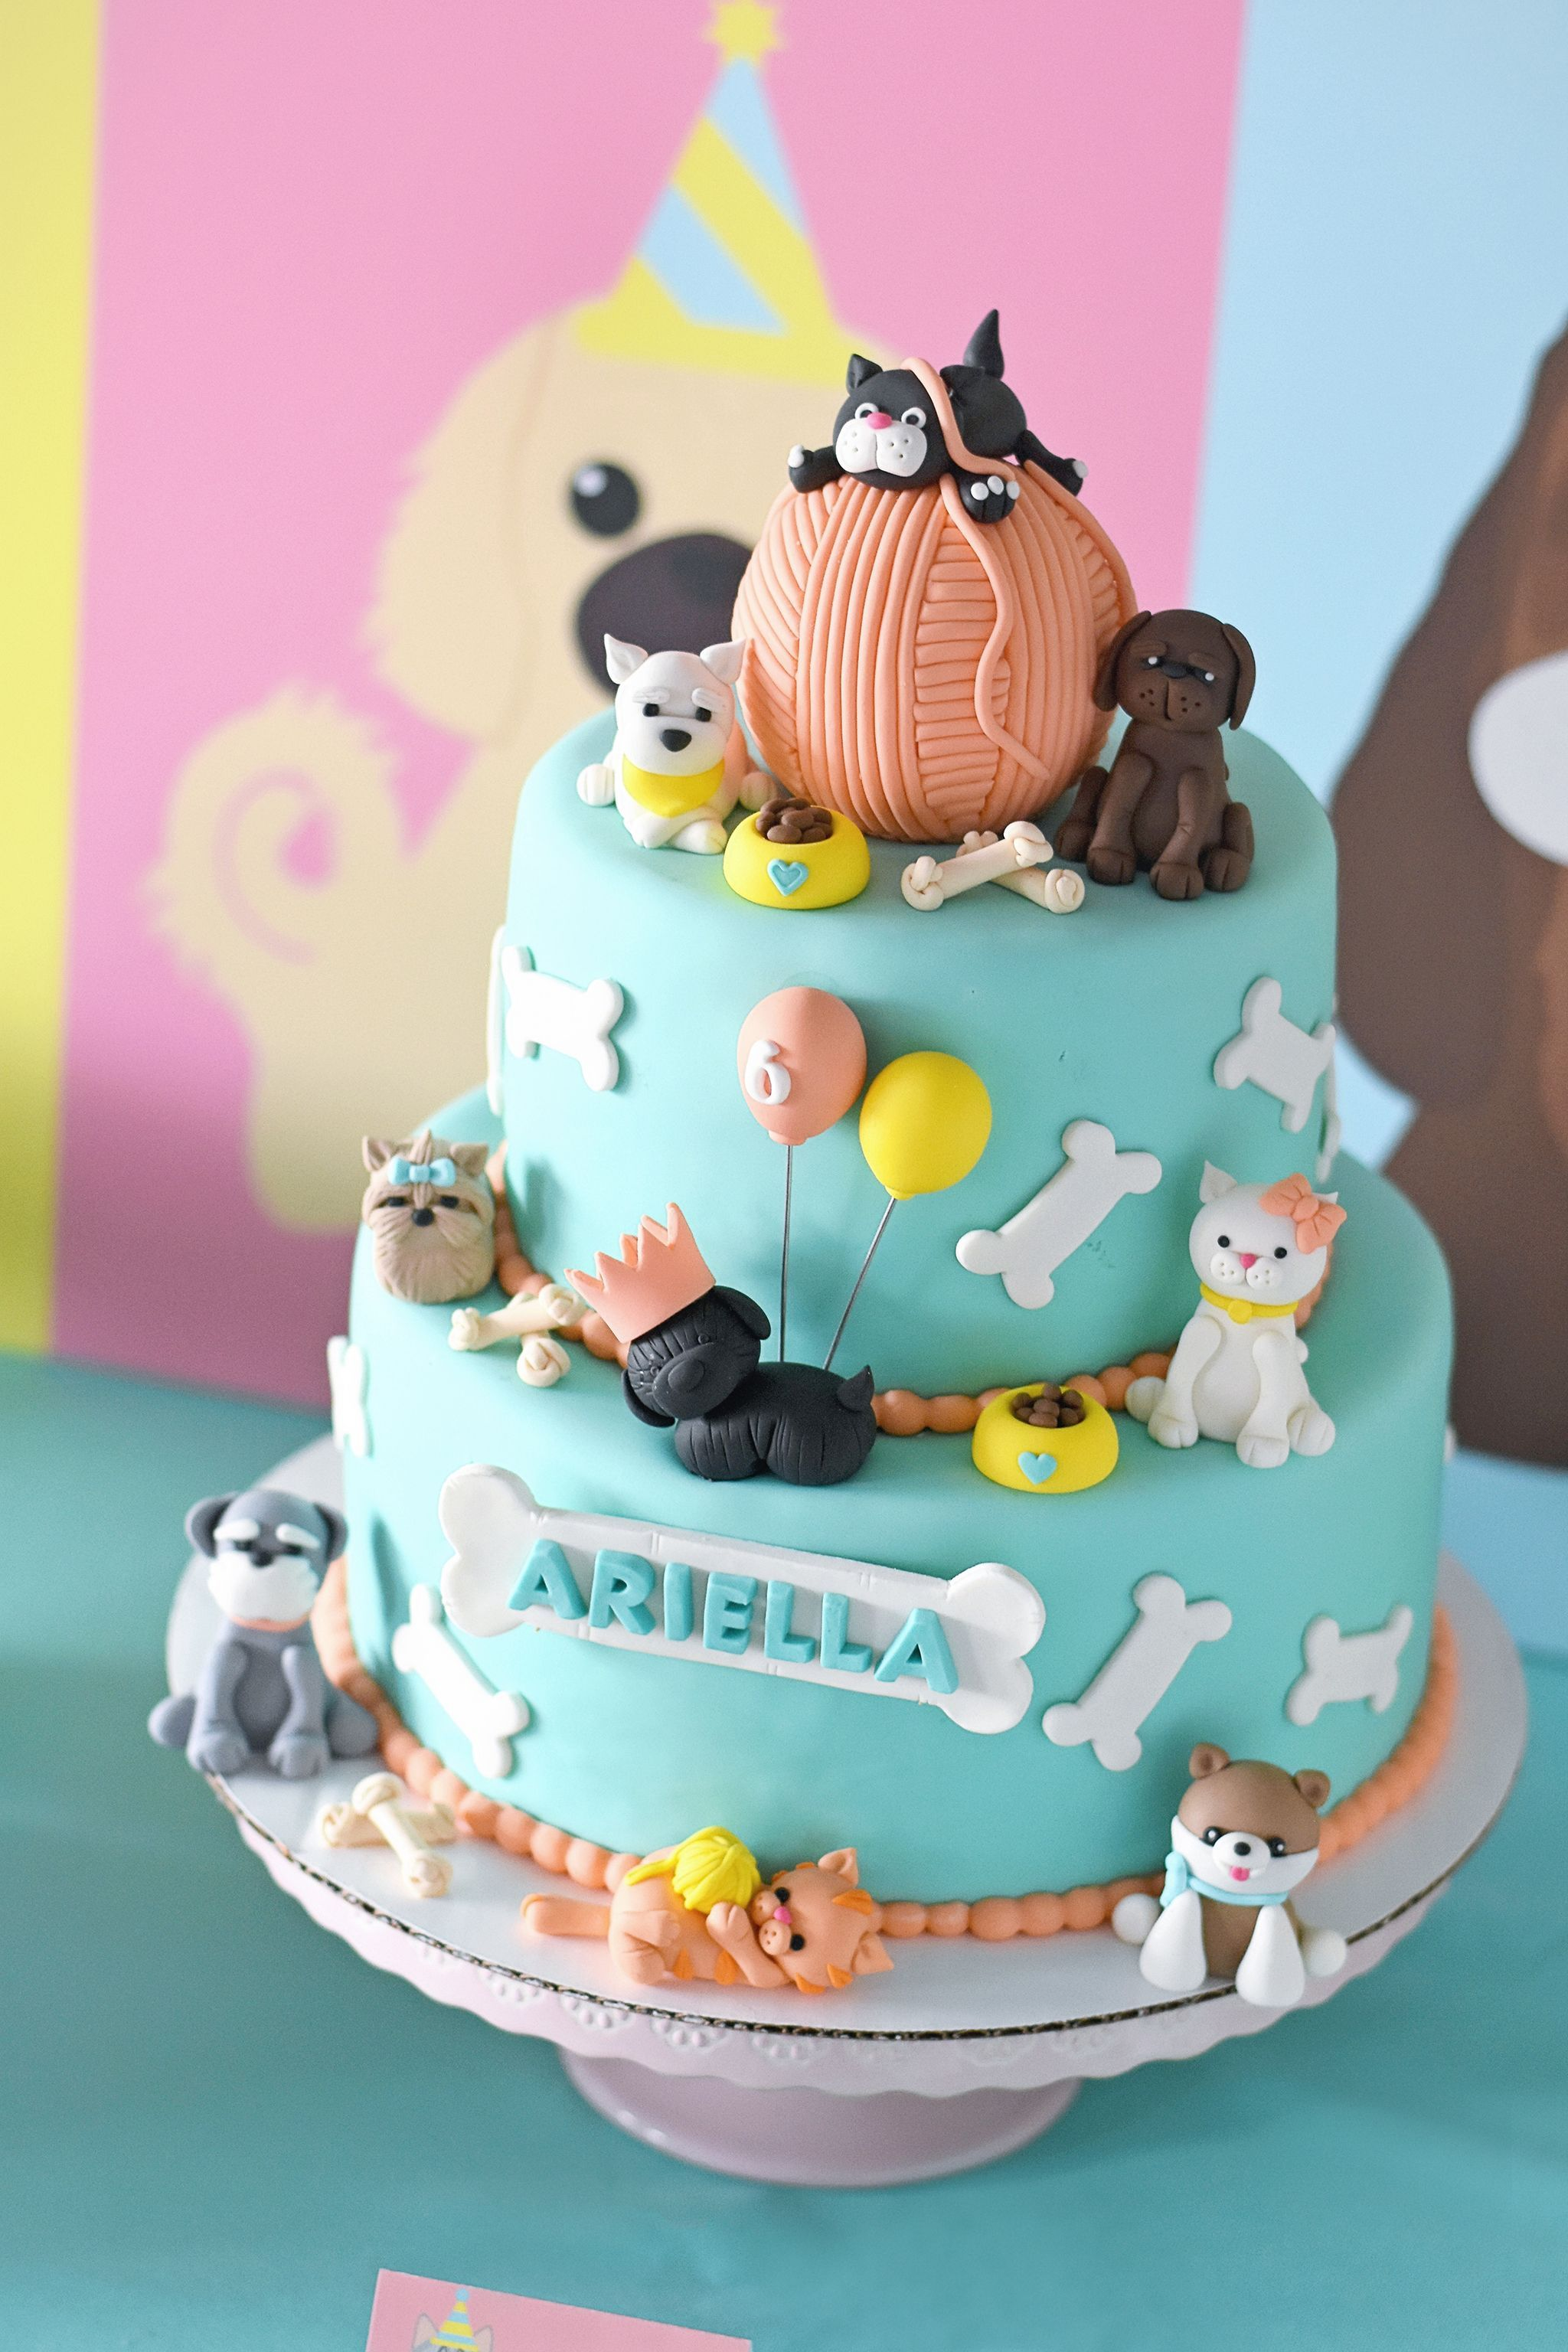 Bow Wow Meow Throw The Purrfect Puppy And Kitten Paw Ty Project Nursery Birthday Cake For Cat Puppy Birthday Cakes Puppy Cake